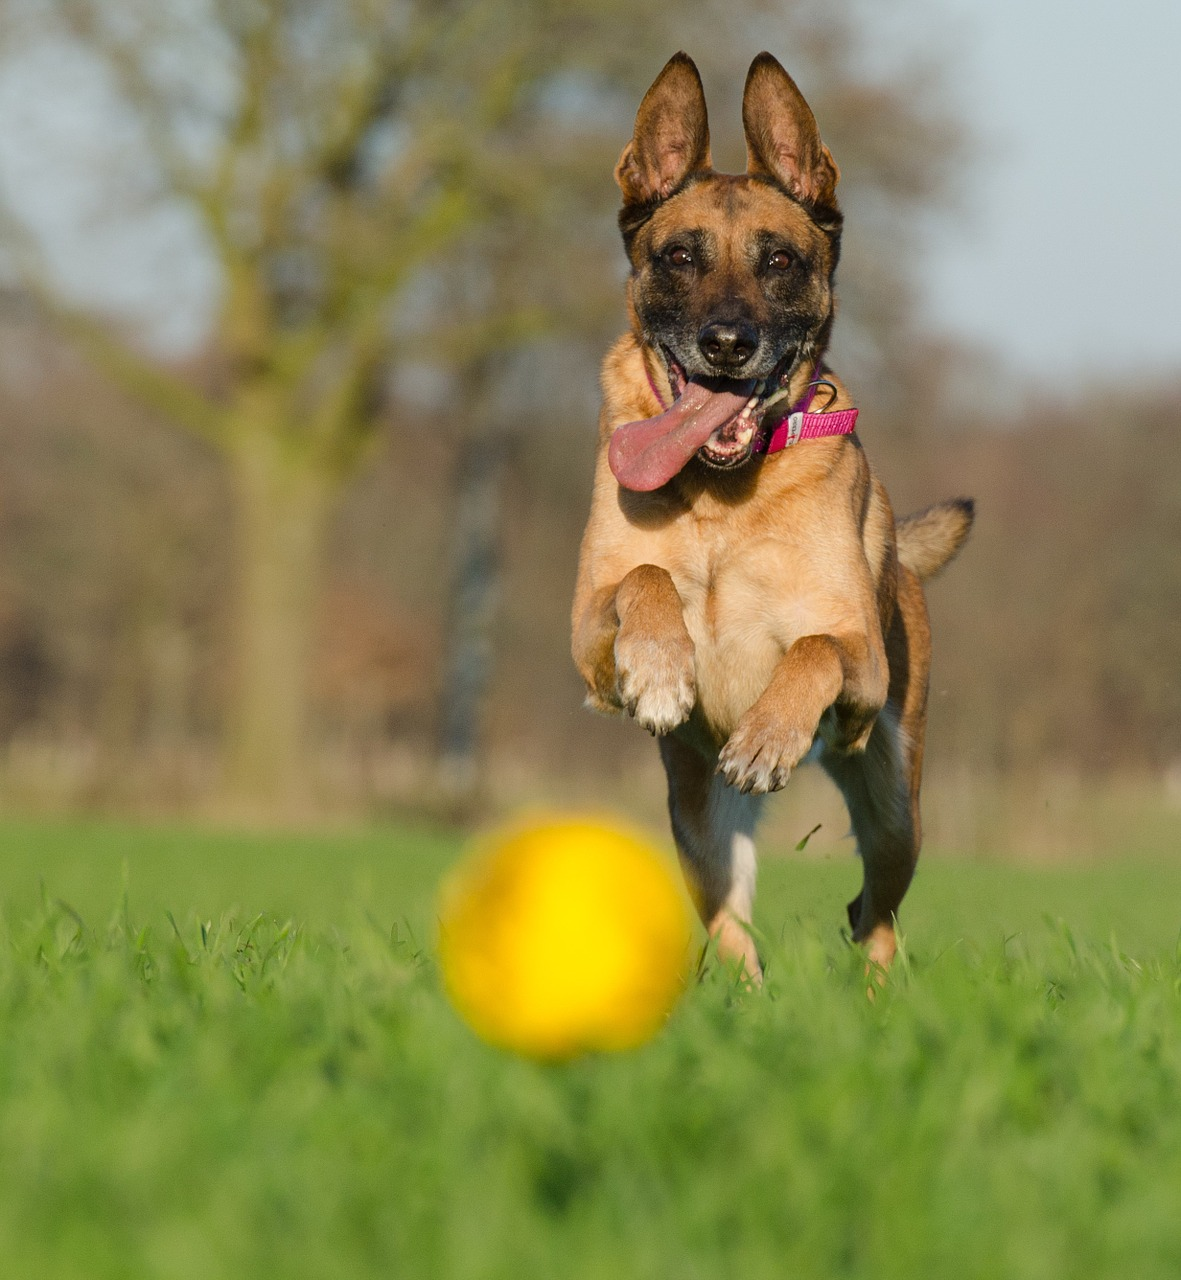 Malinois Shepherd Dogs playing running field ball